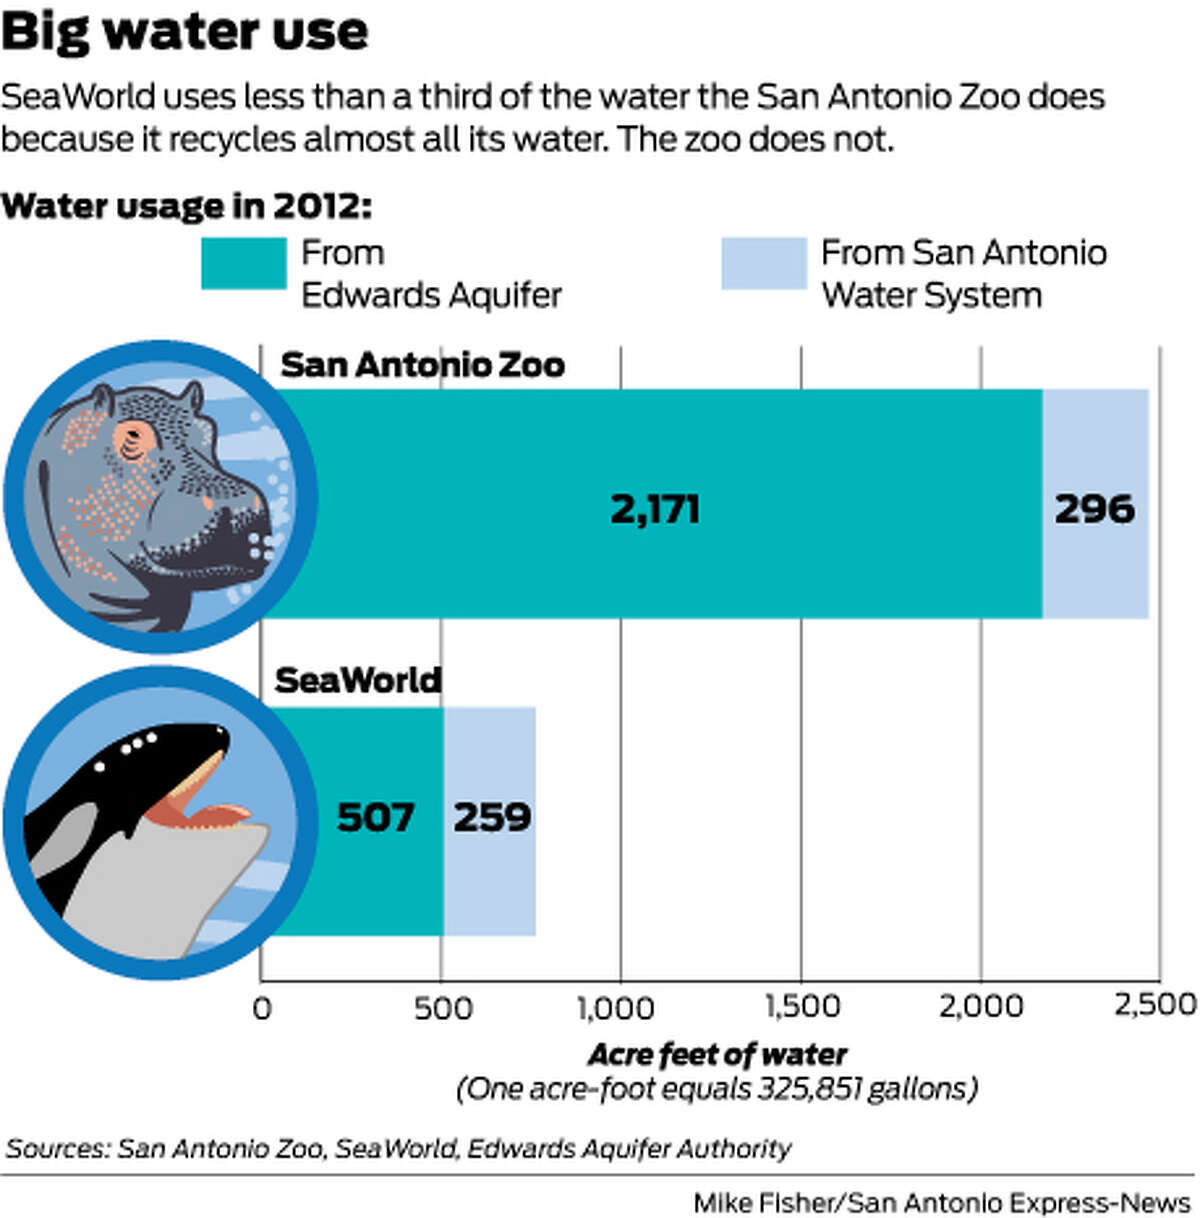 SeaWorld uses less than a third of the water the San Antonio Zoo does because it recycles almost all its water. The zoo does not.